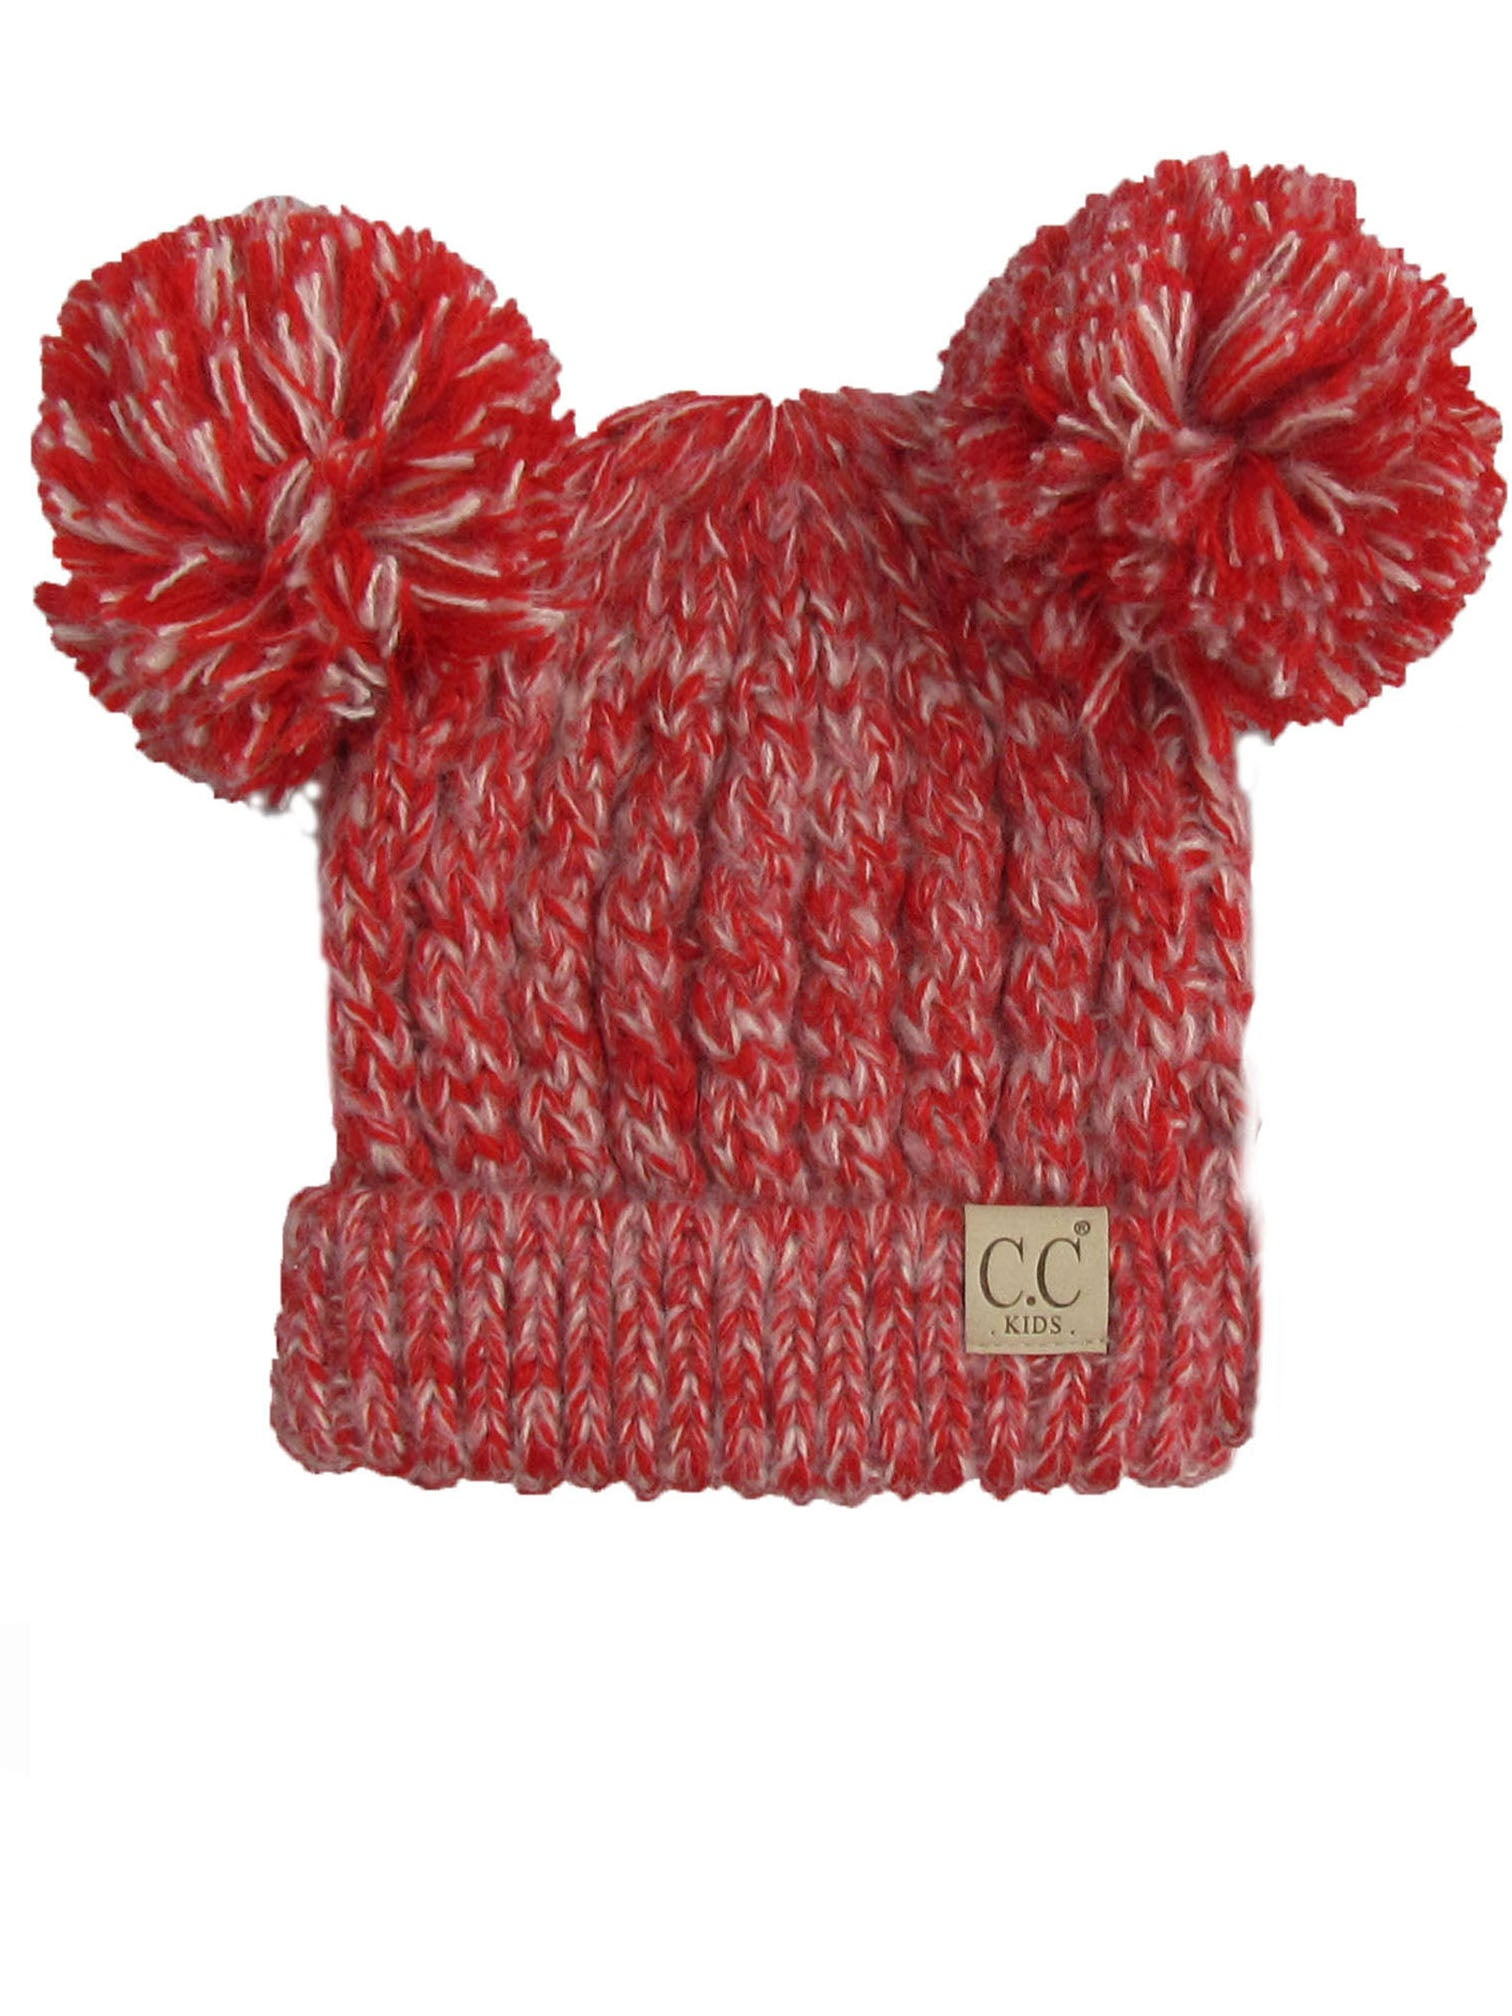 C.C Kid-23 Red Youth Beanie